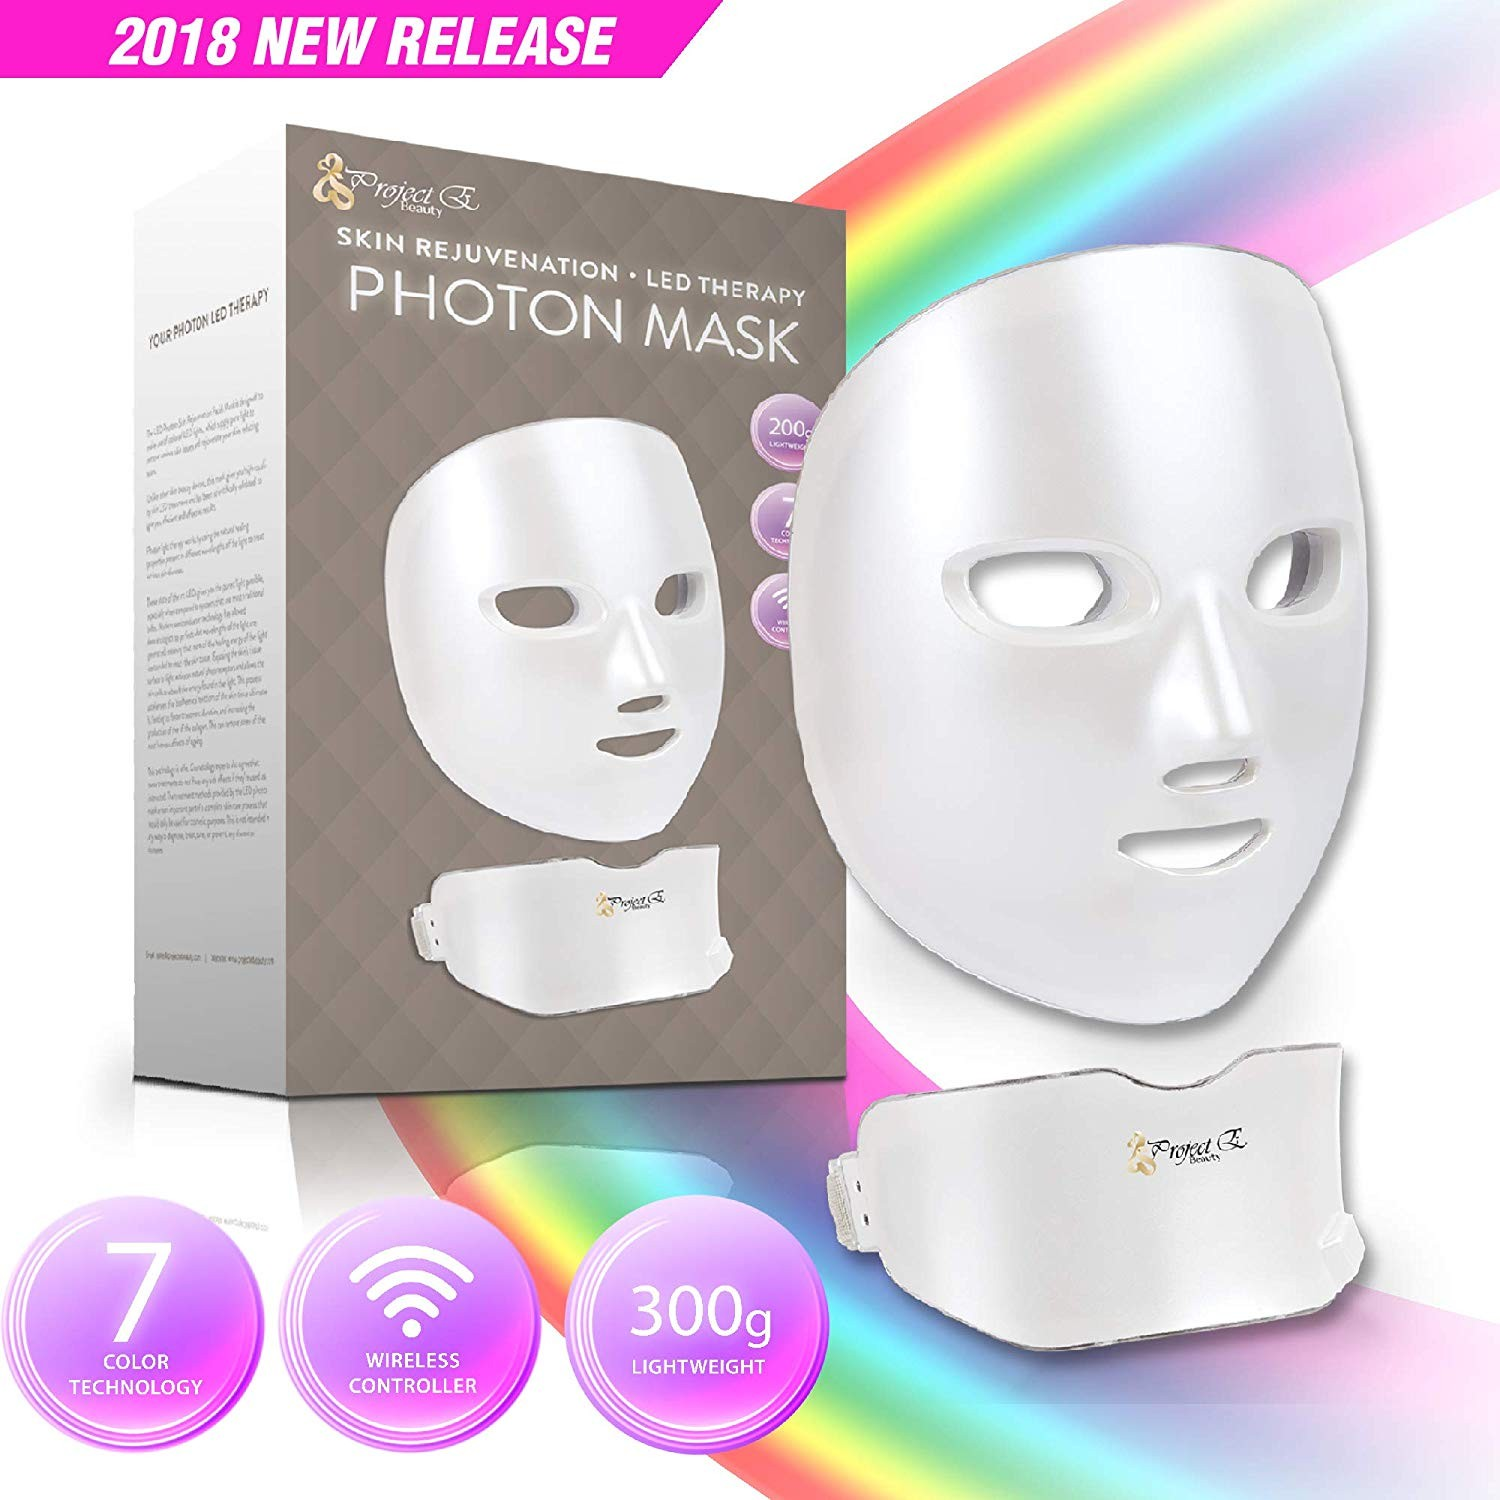 Project E Beauty Wireless Facial And Neck Led Photon Mask